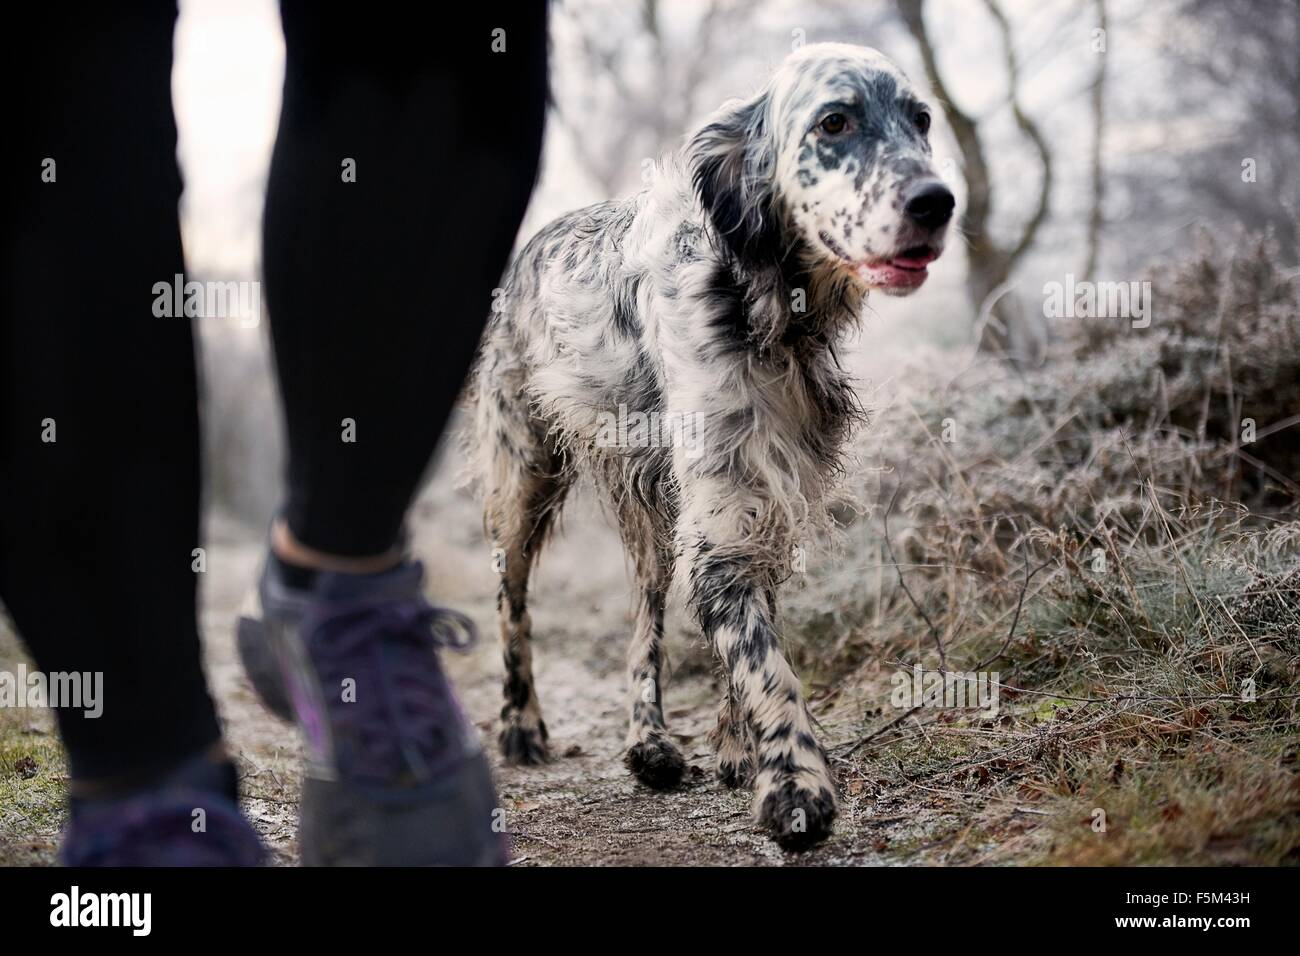 Legs of mid adult woman walking dog on frosty path - Stock Image